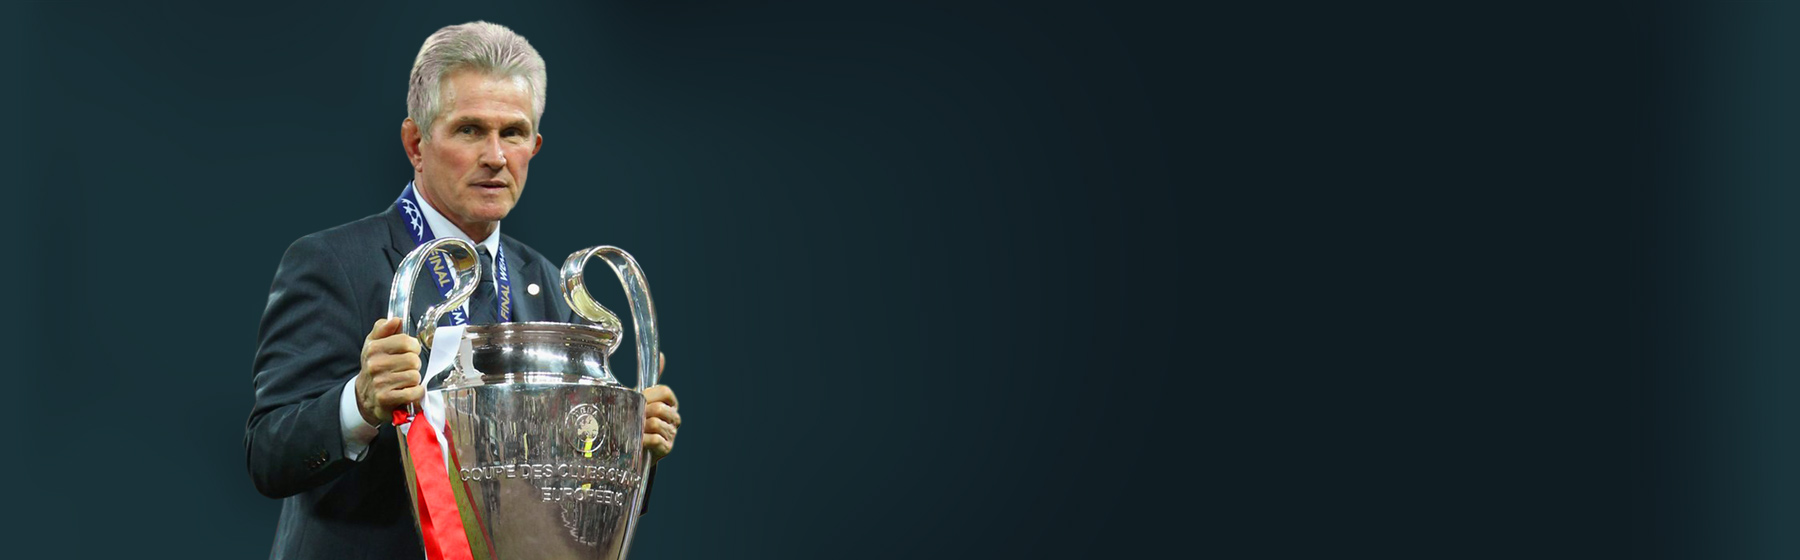 Jupp Heynckes with champions league trophy in hand - image-header